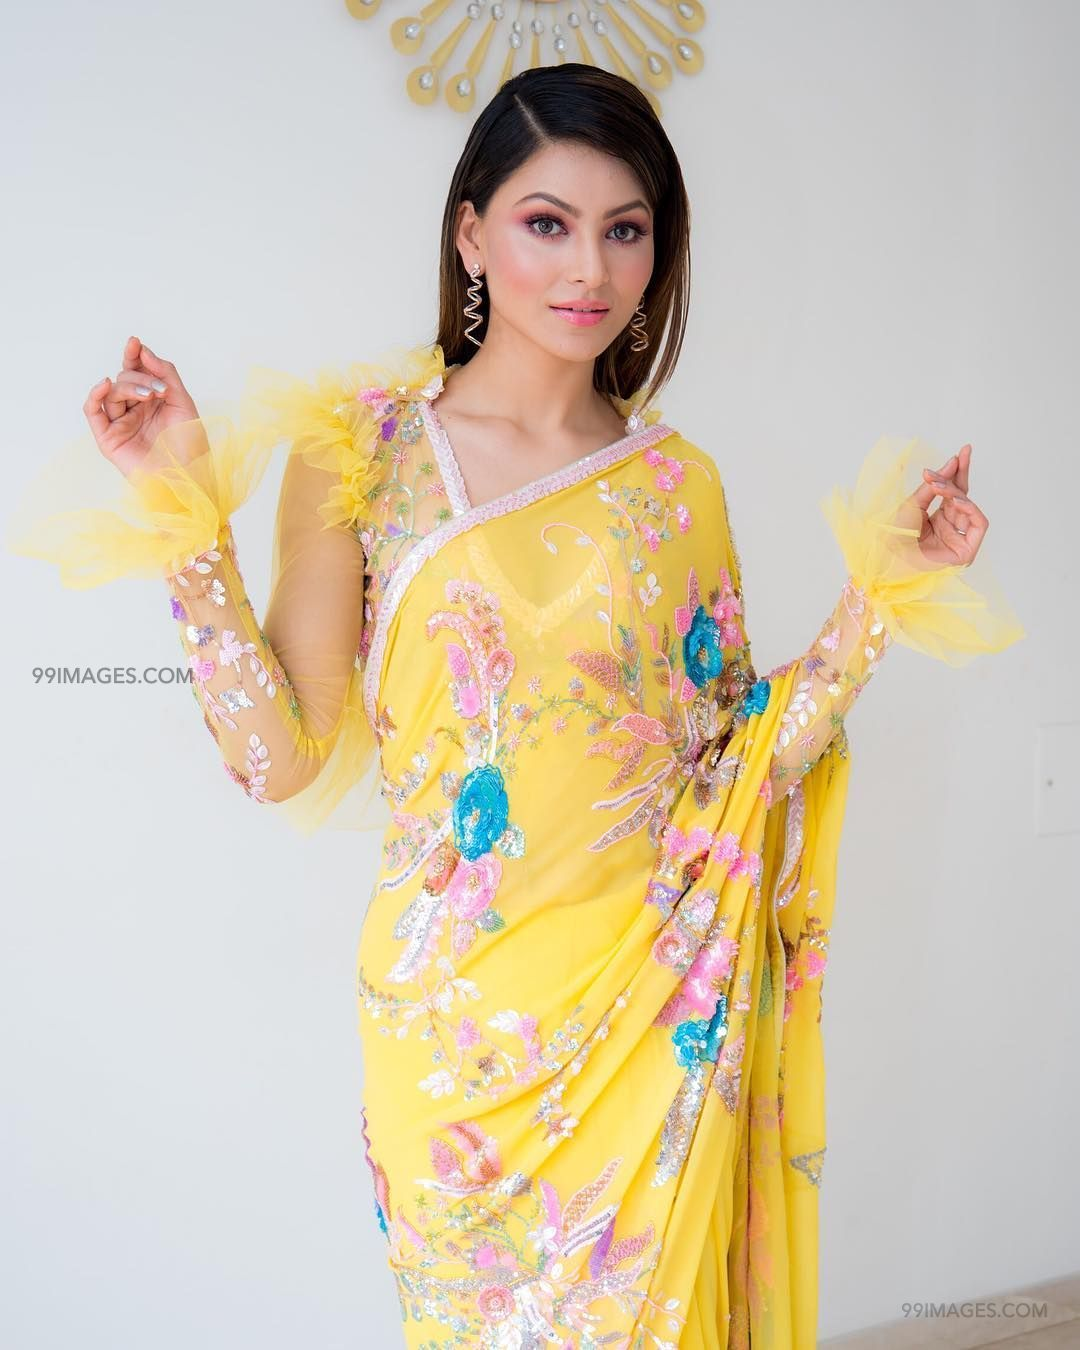 Urvashi Rautela Beautiful Photos & Mobile Wallpapers HD (Android/iPhone) (1080p) (36317) - Urvashi Rautela